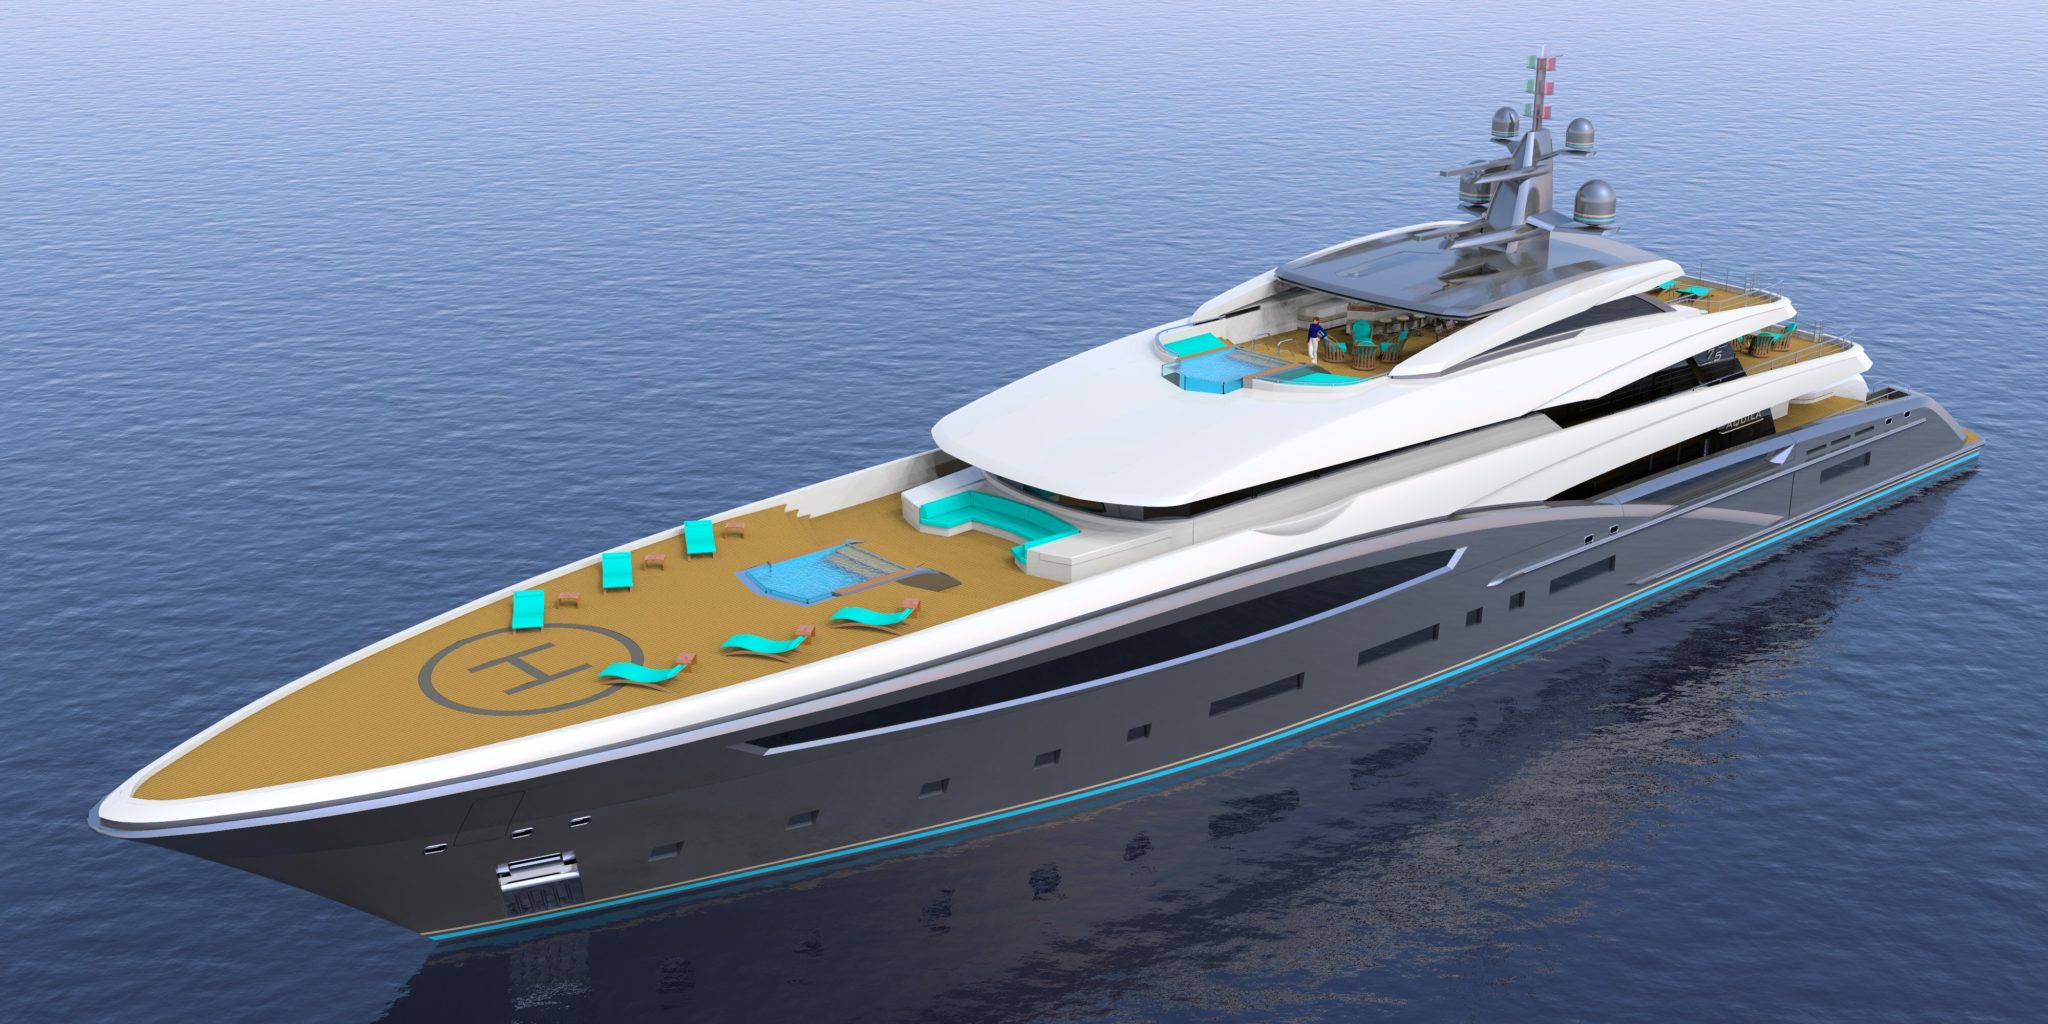 THE NEW BUILDS OF LUXURIOUS YACHTS